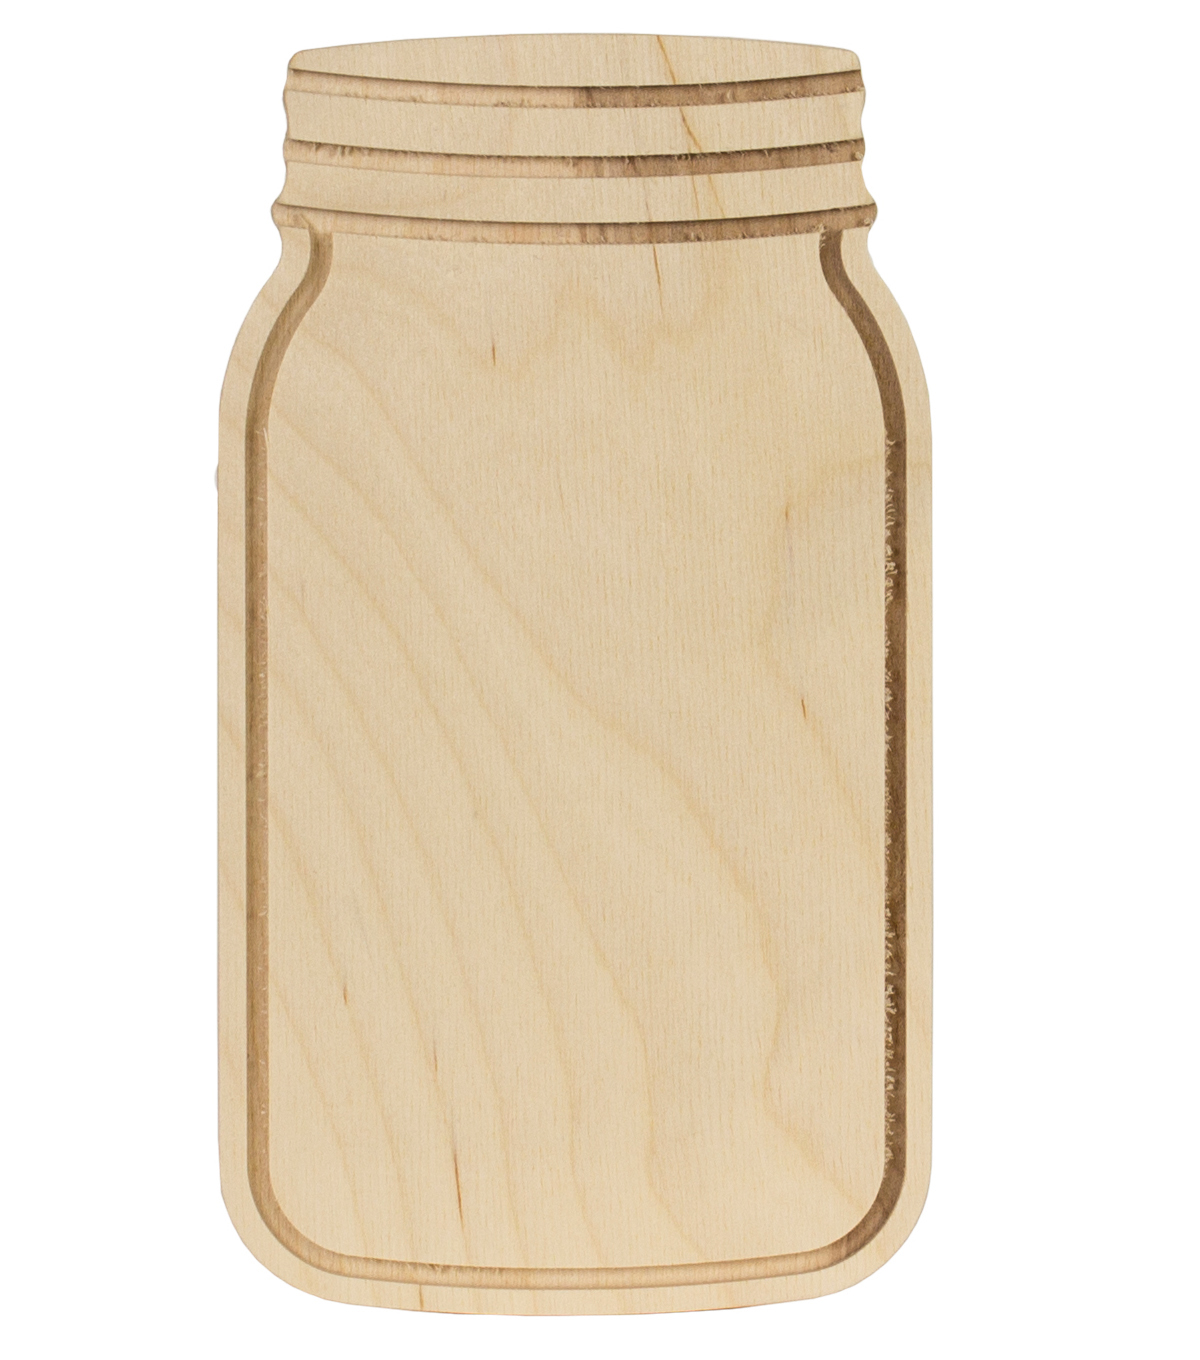 Unfinished Wood Surface-Mason Jar